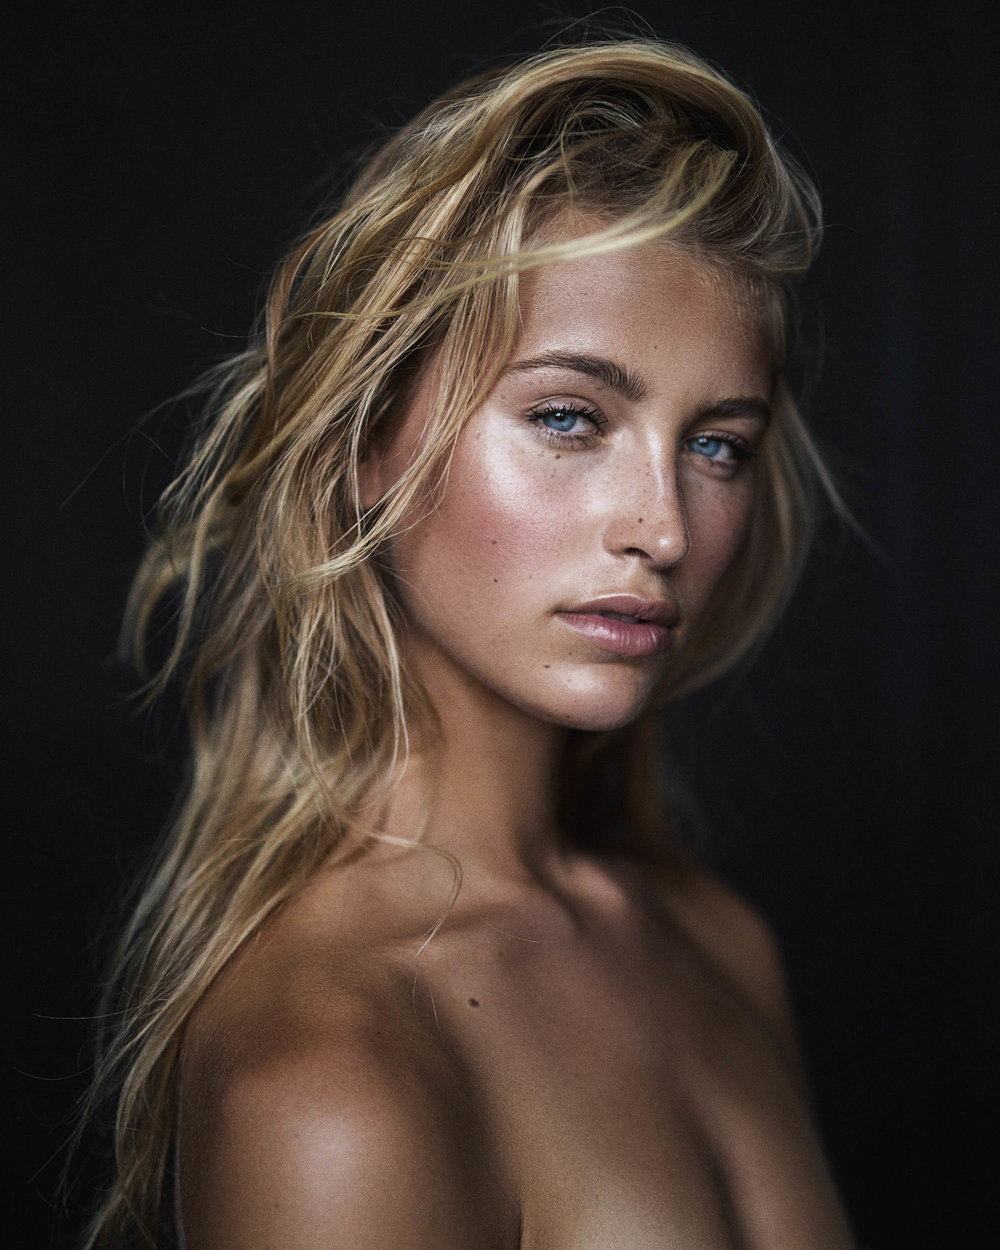 Beauty portrait of Lily Katharina shot in melbourne by photographer Nick Walters.jpg